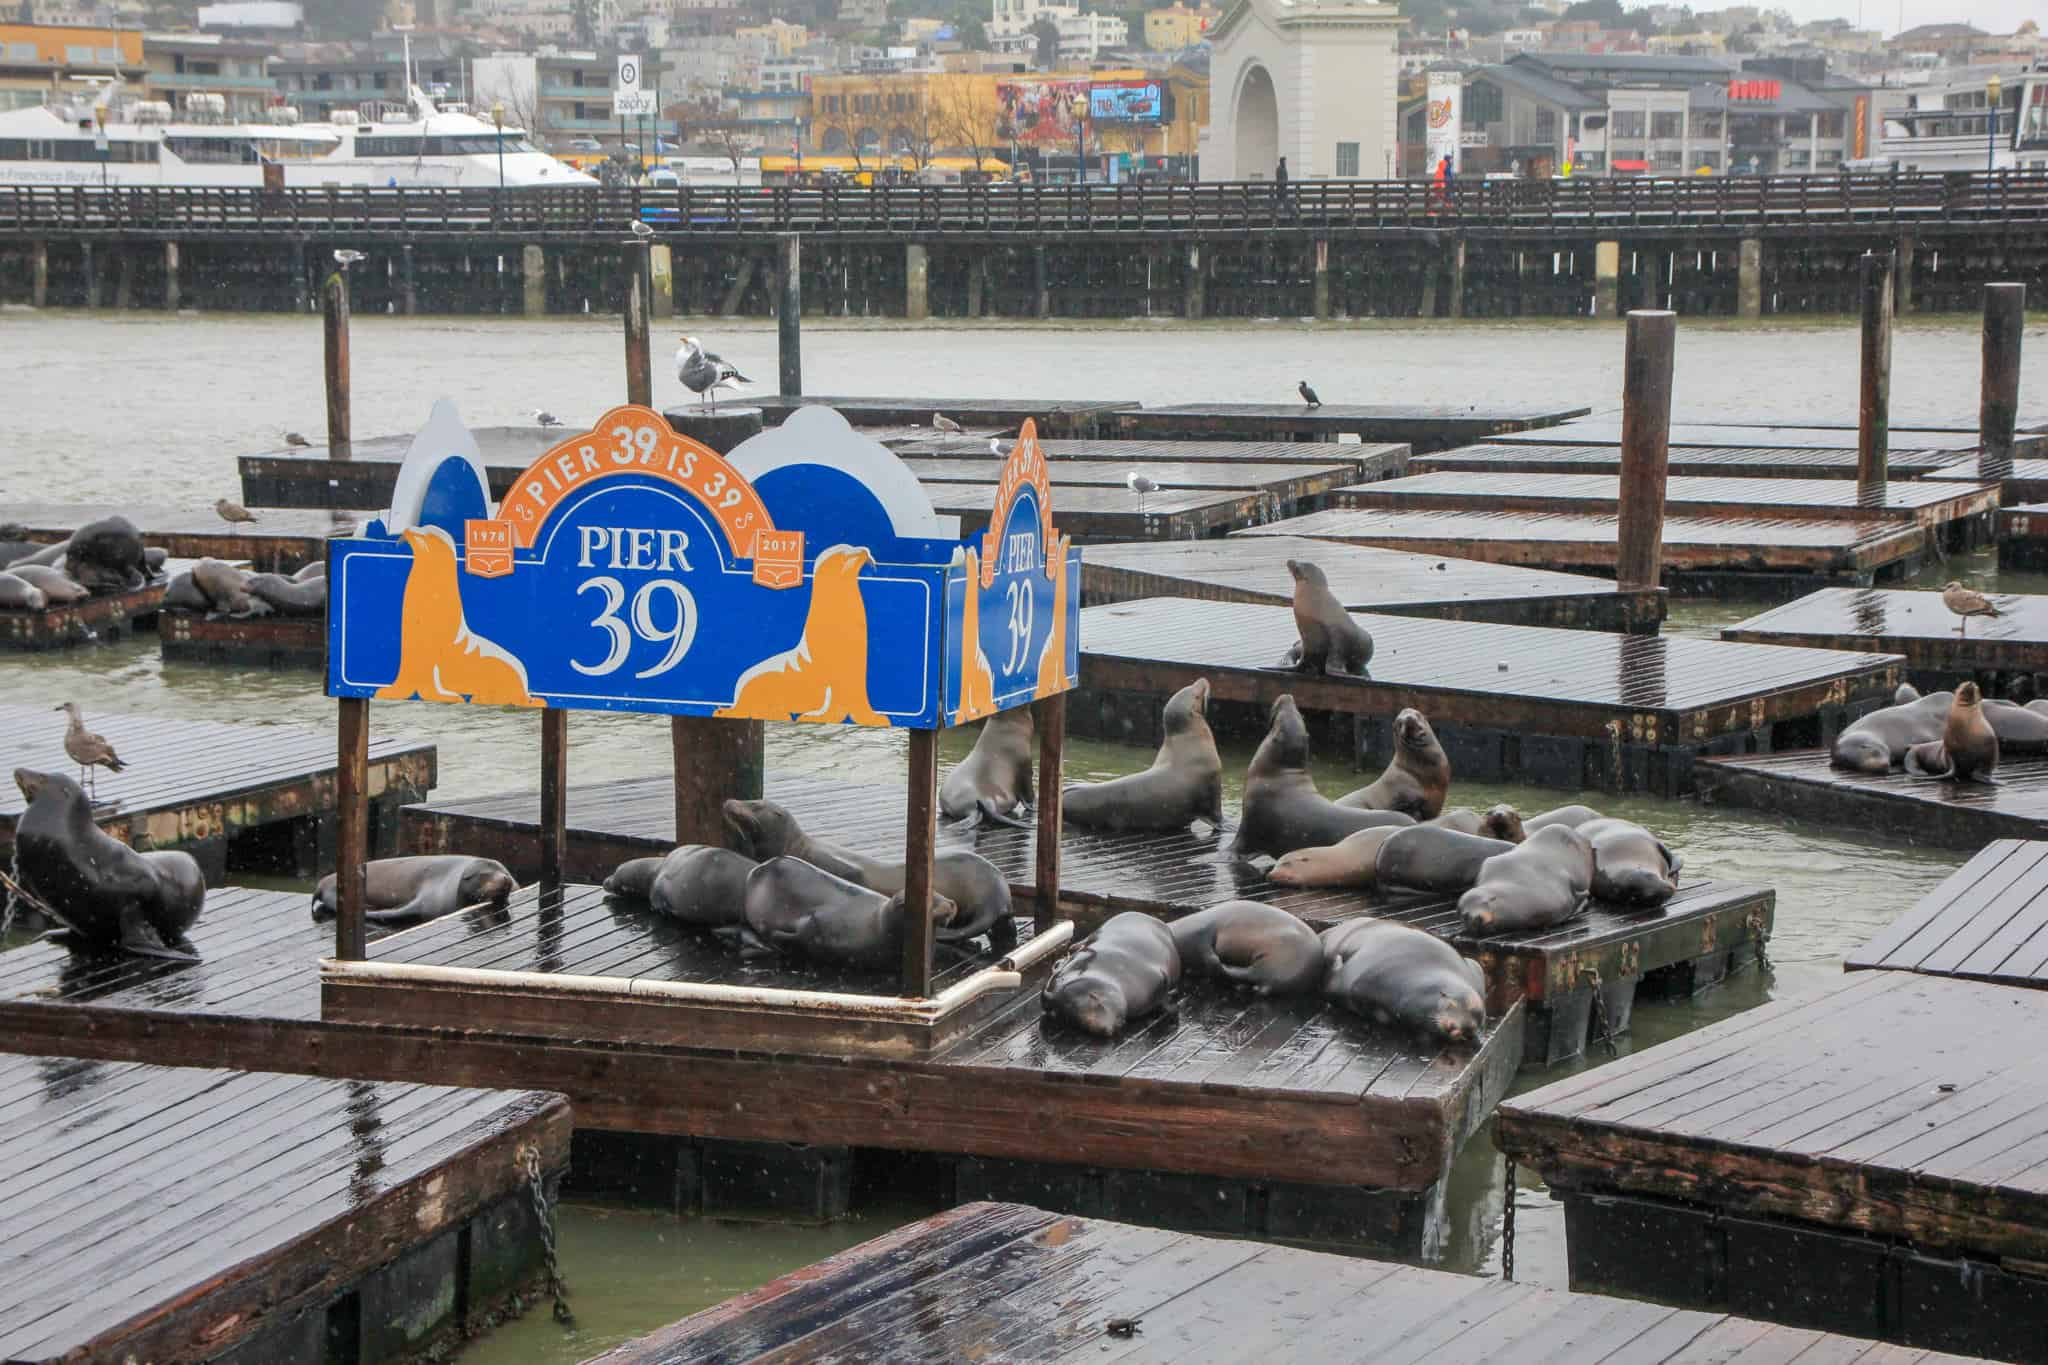 Visiting Pier 39 is an absolute must do when spending 2 days in San Francisco